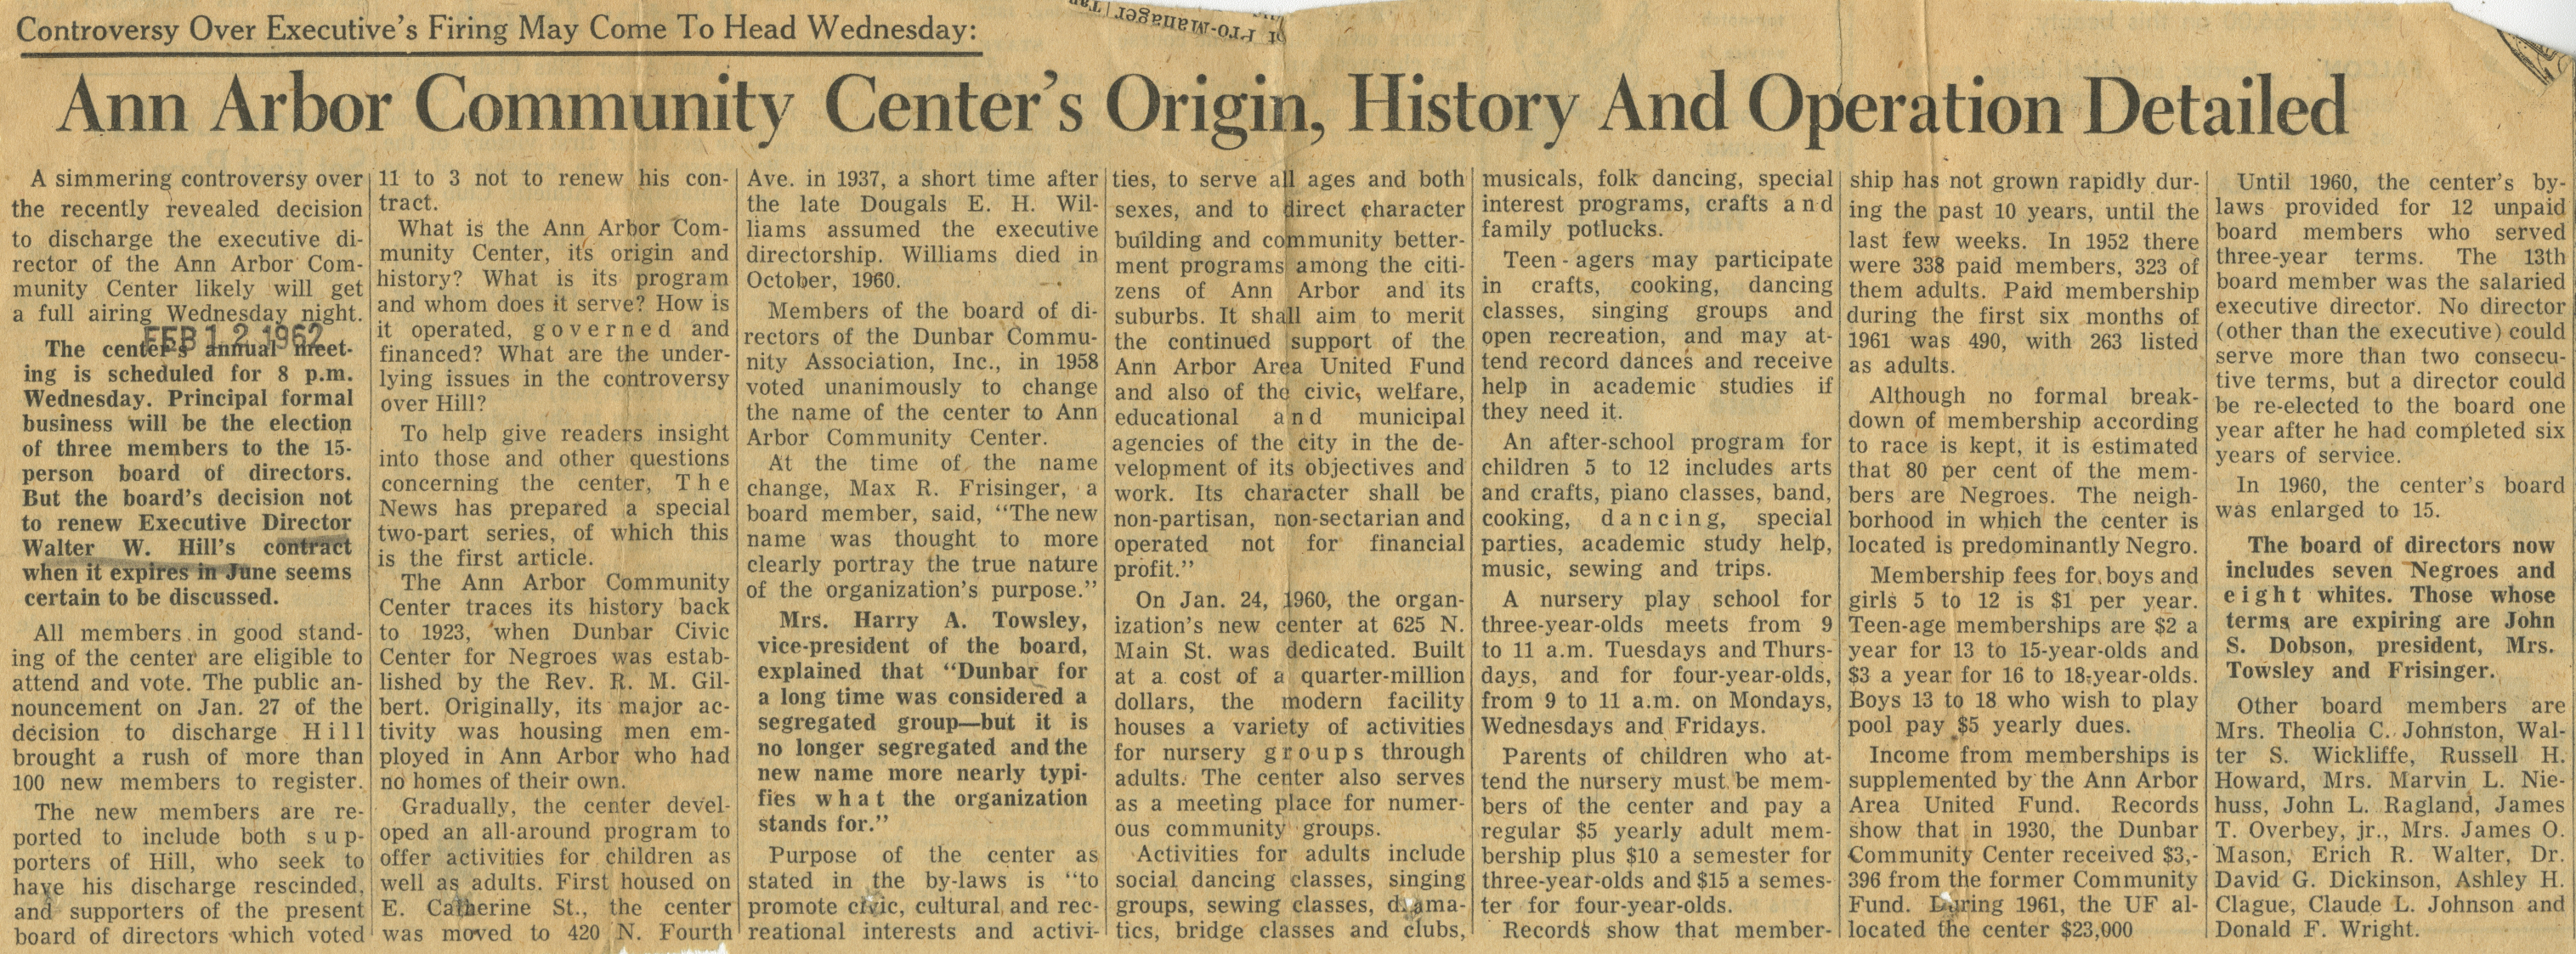 Ann Arbor Community Center's Origin, History And Operation Detailed image